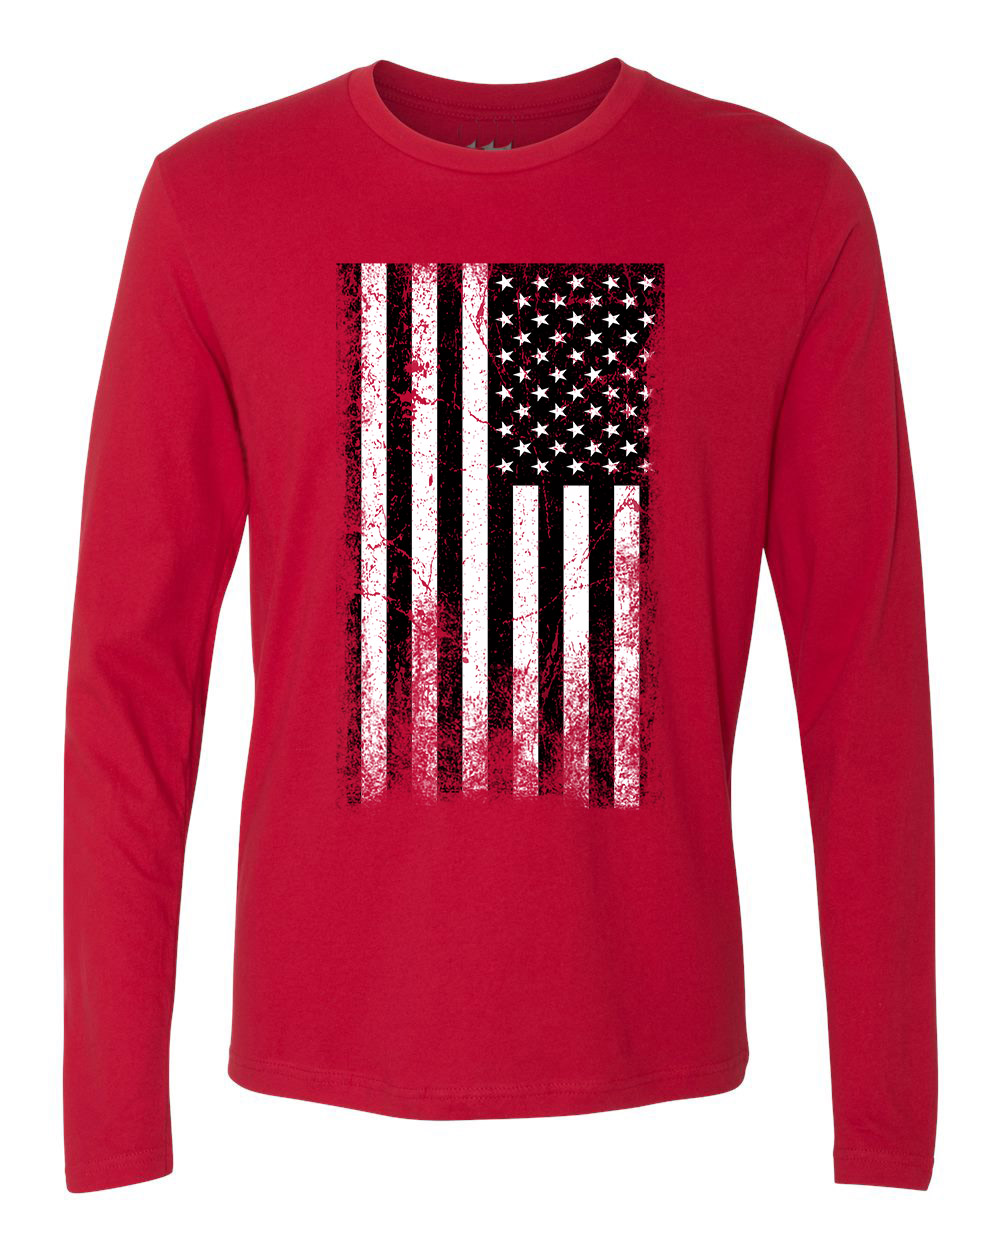 American flag distressed black white mens long sleeve t for Custom t shirts distressed